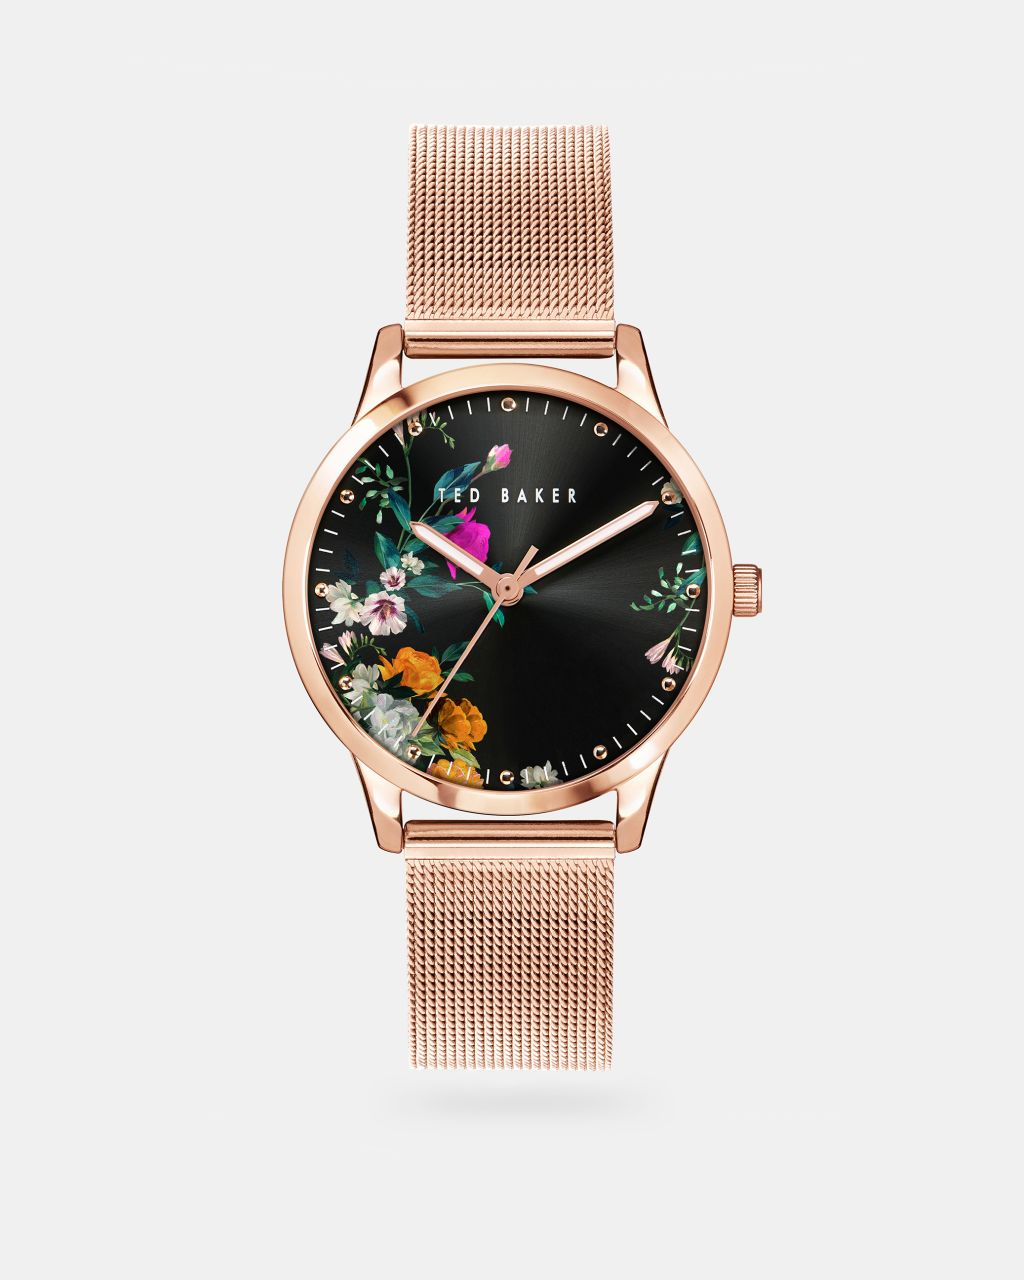 TED BAKER Bkpfzs116 Fitrovia Printed Mesh Detail Watch | TED BAKER SALE